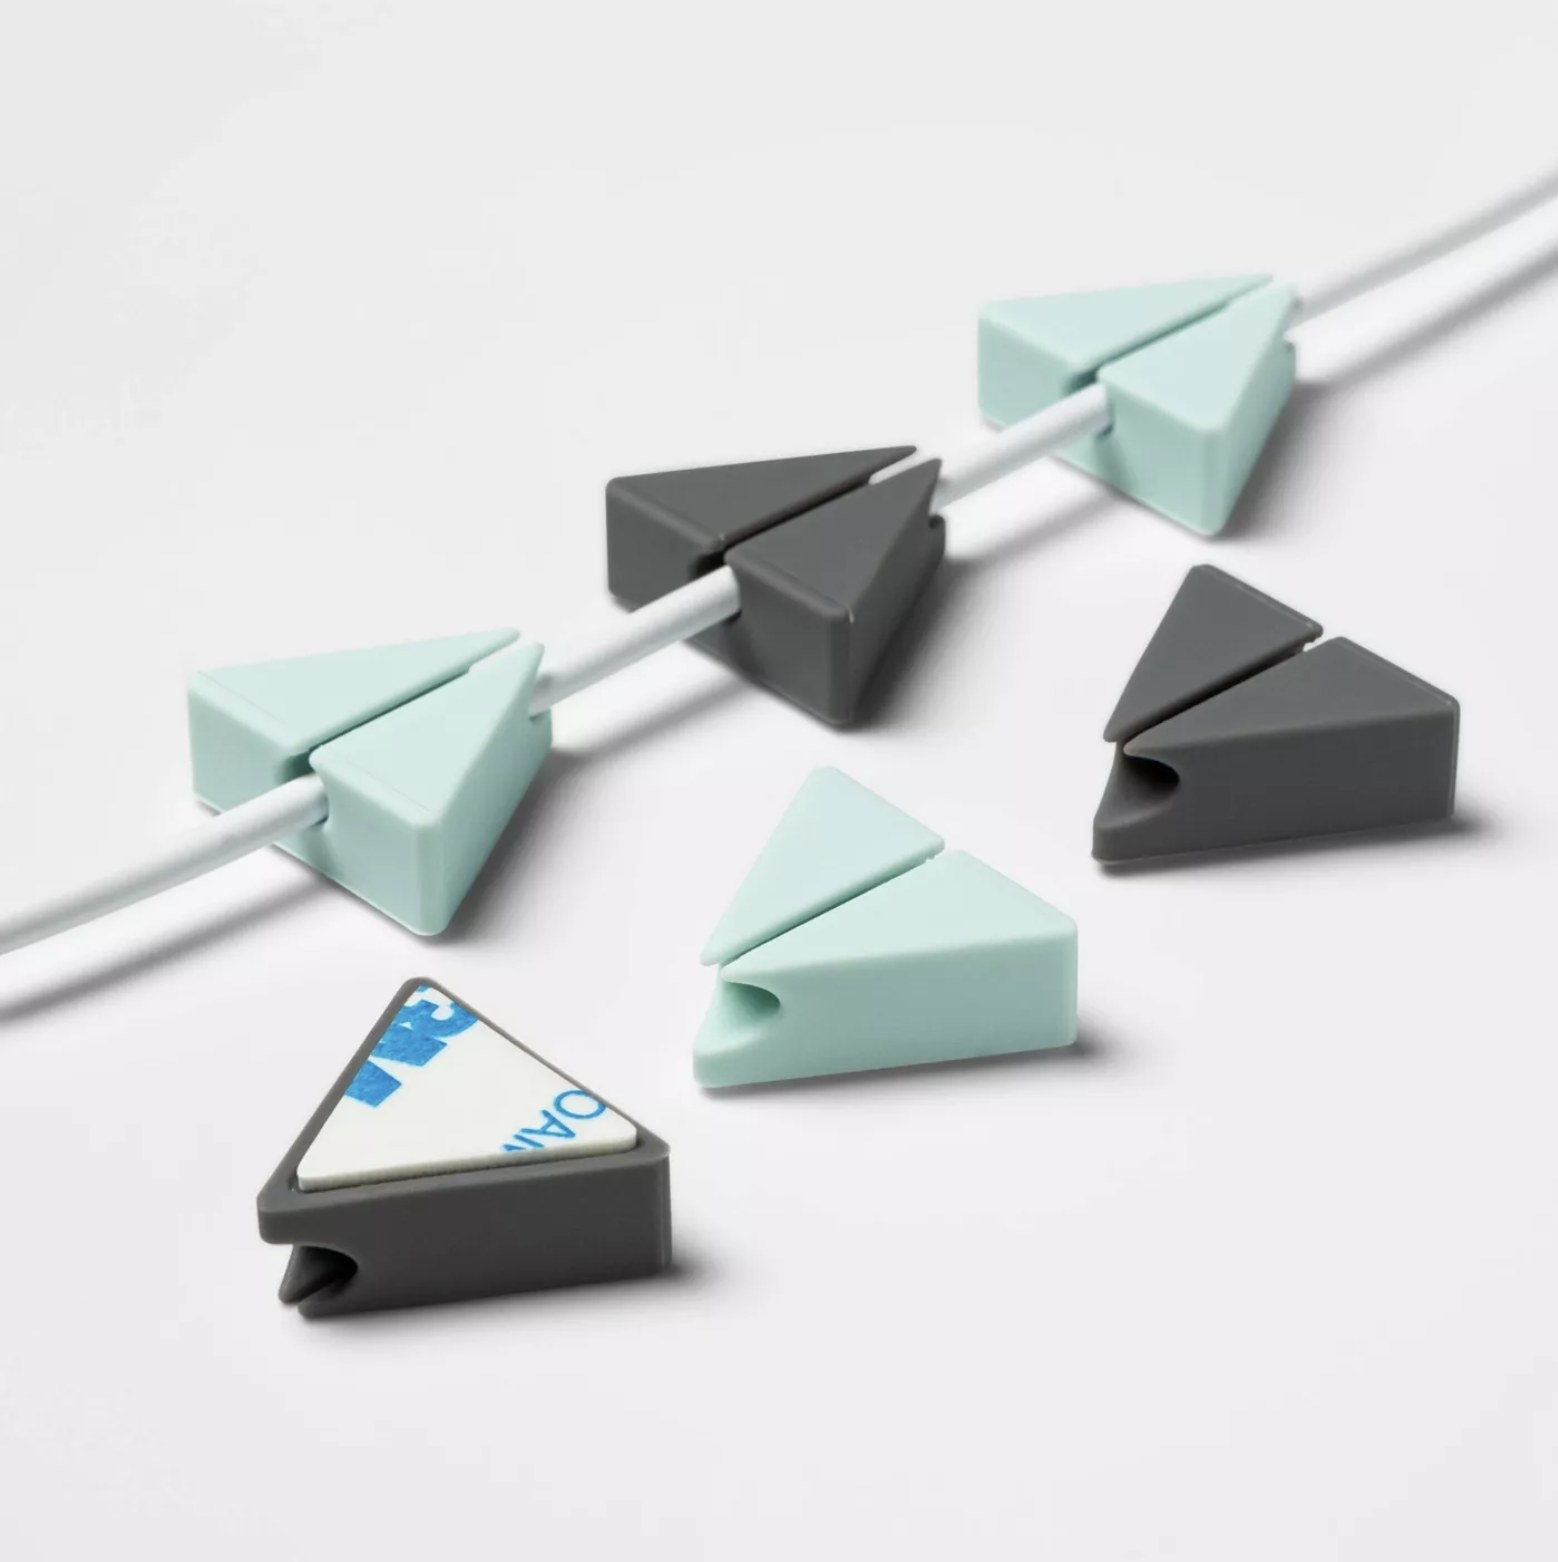 The triangle cable clips